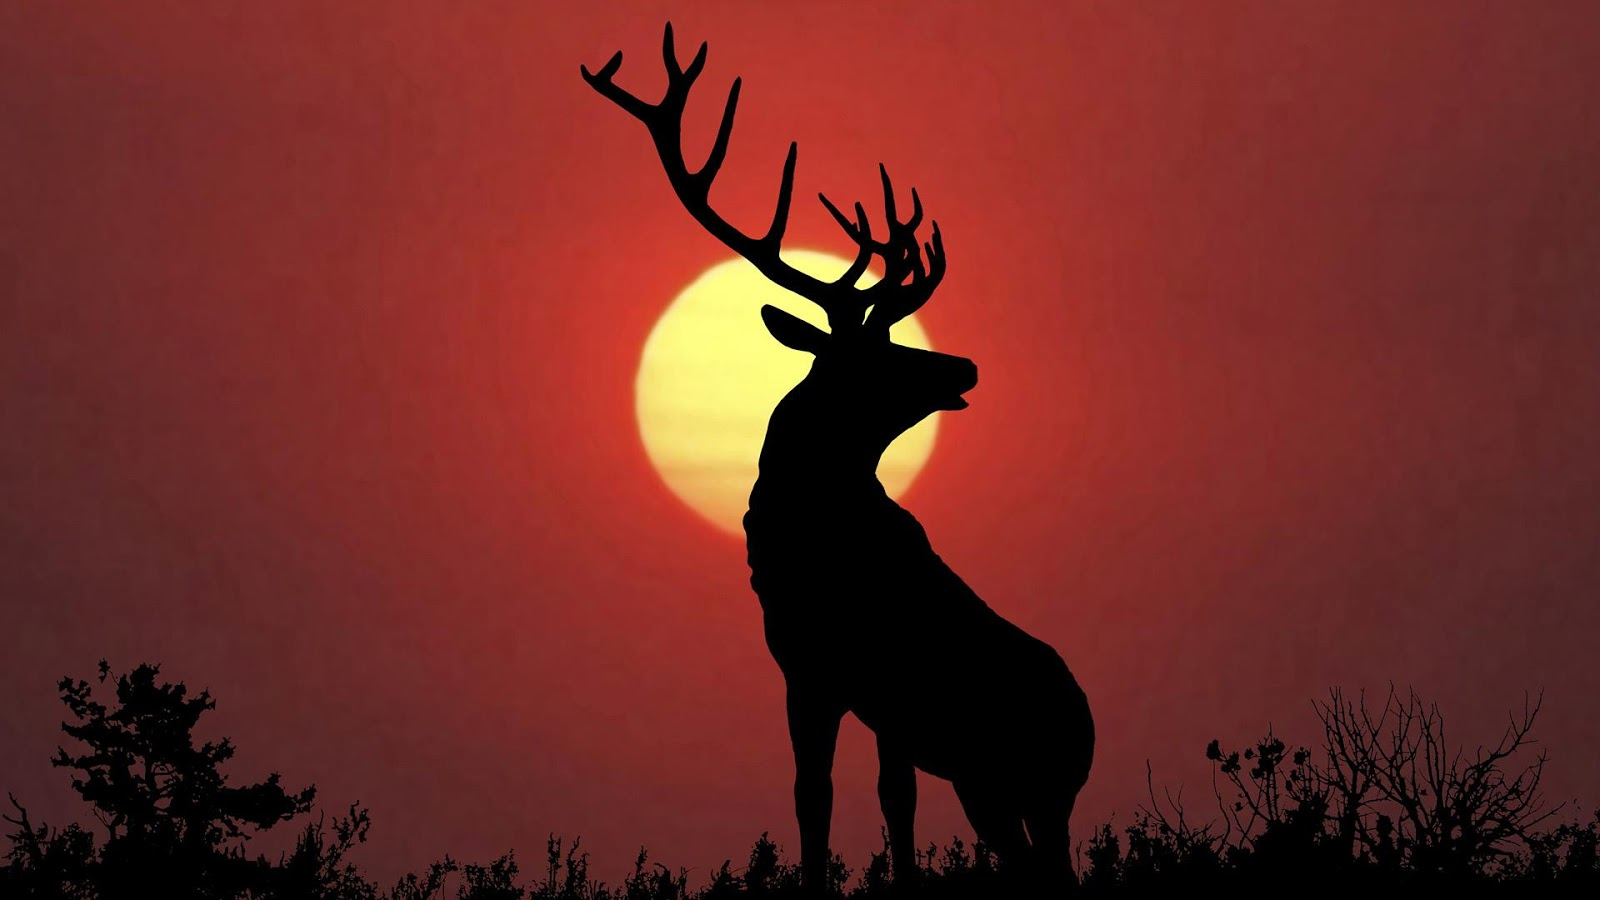 Deer Wallpapers - Android Apps on Google Play